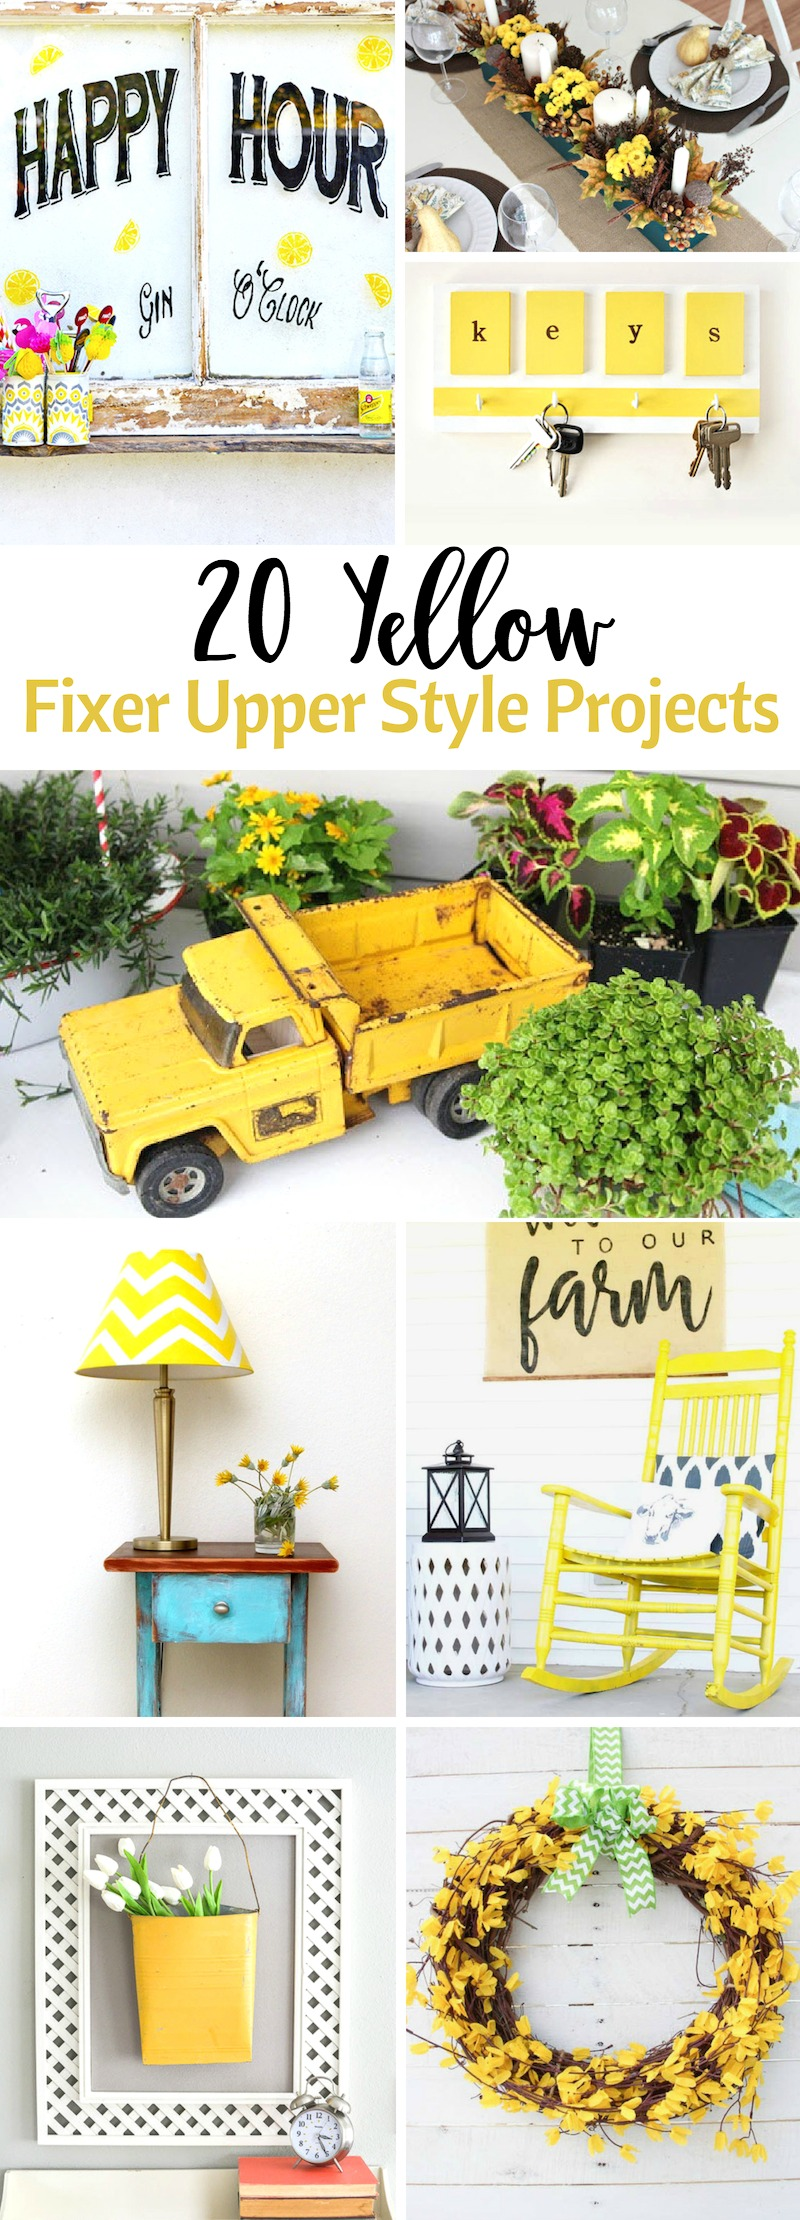 Yellow Fixer Upper Style Projects